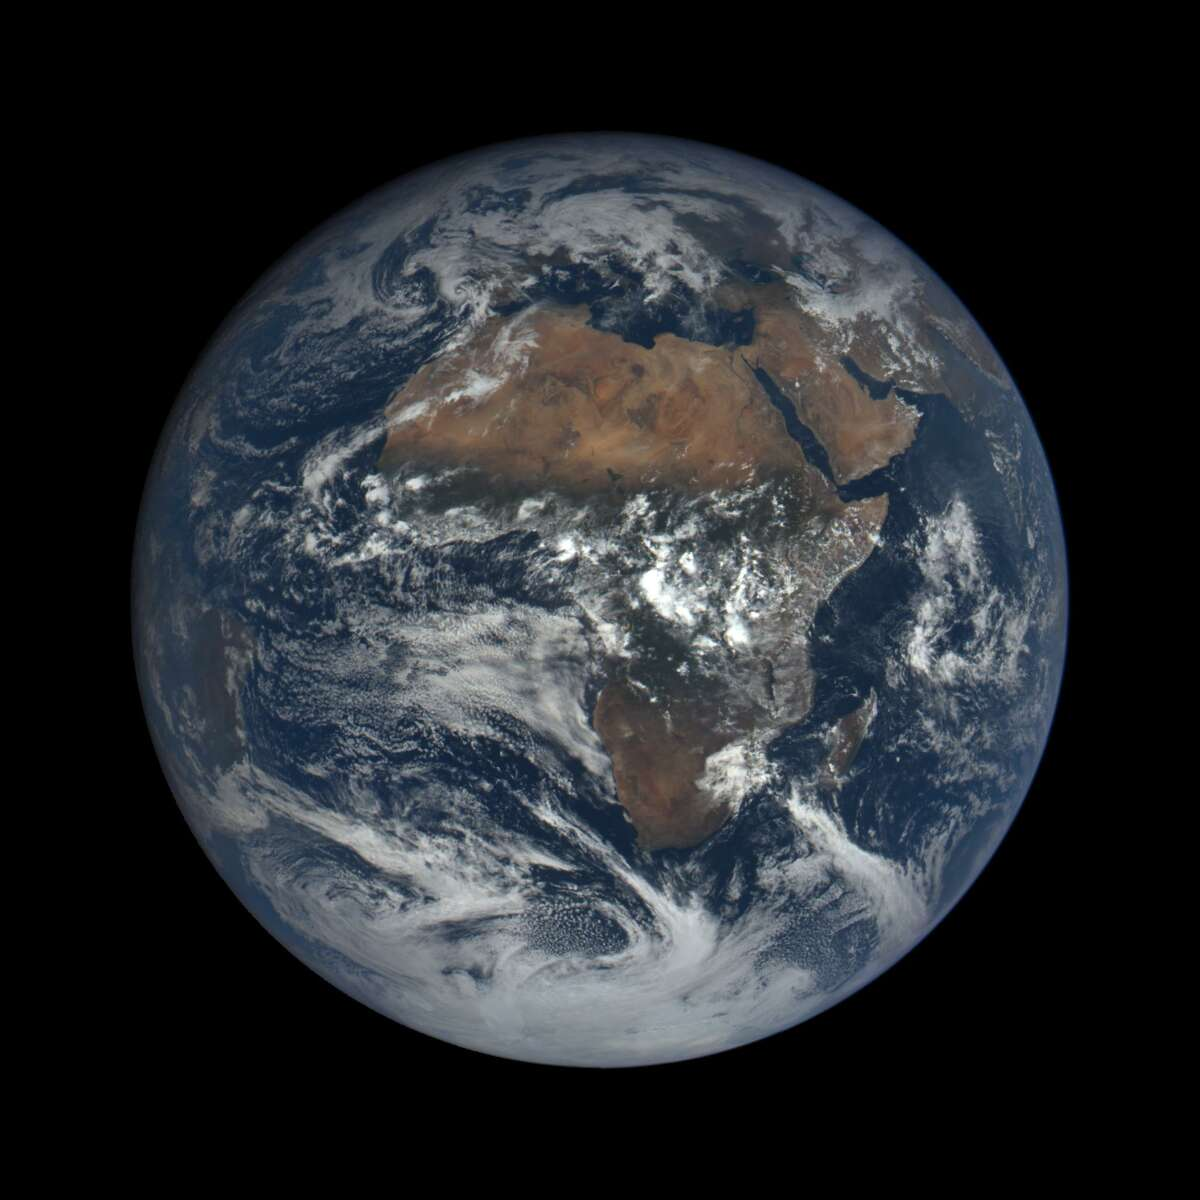 The Earth as seen from space on Oct. 17. (This image was taken by NASA's EPIC camera onboard the NOAA DSCOVR spacecraft)